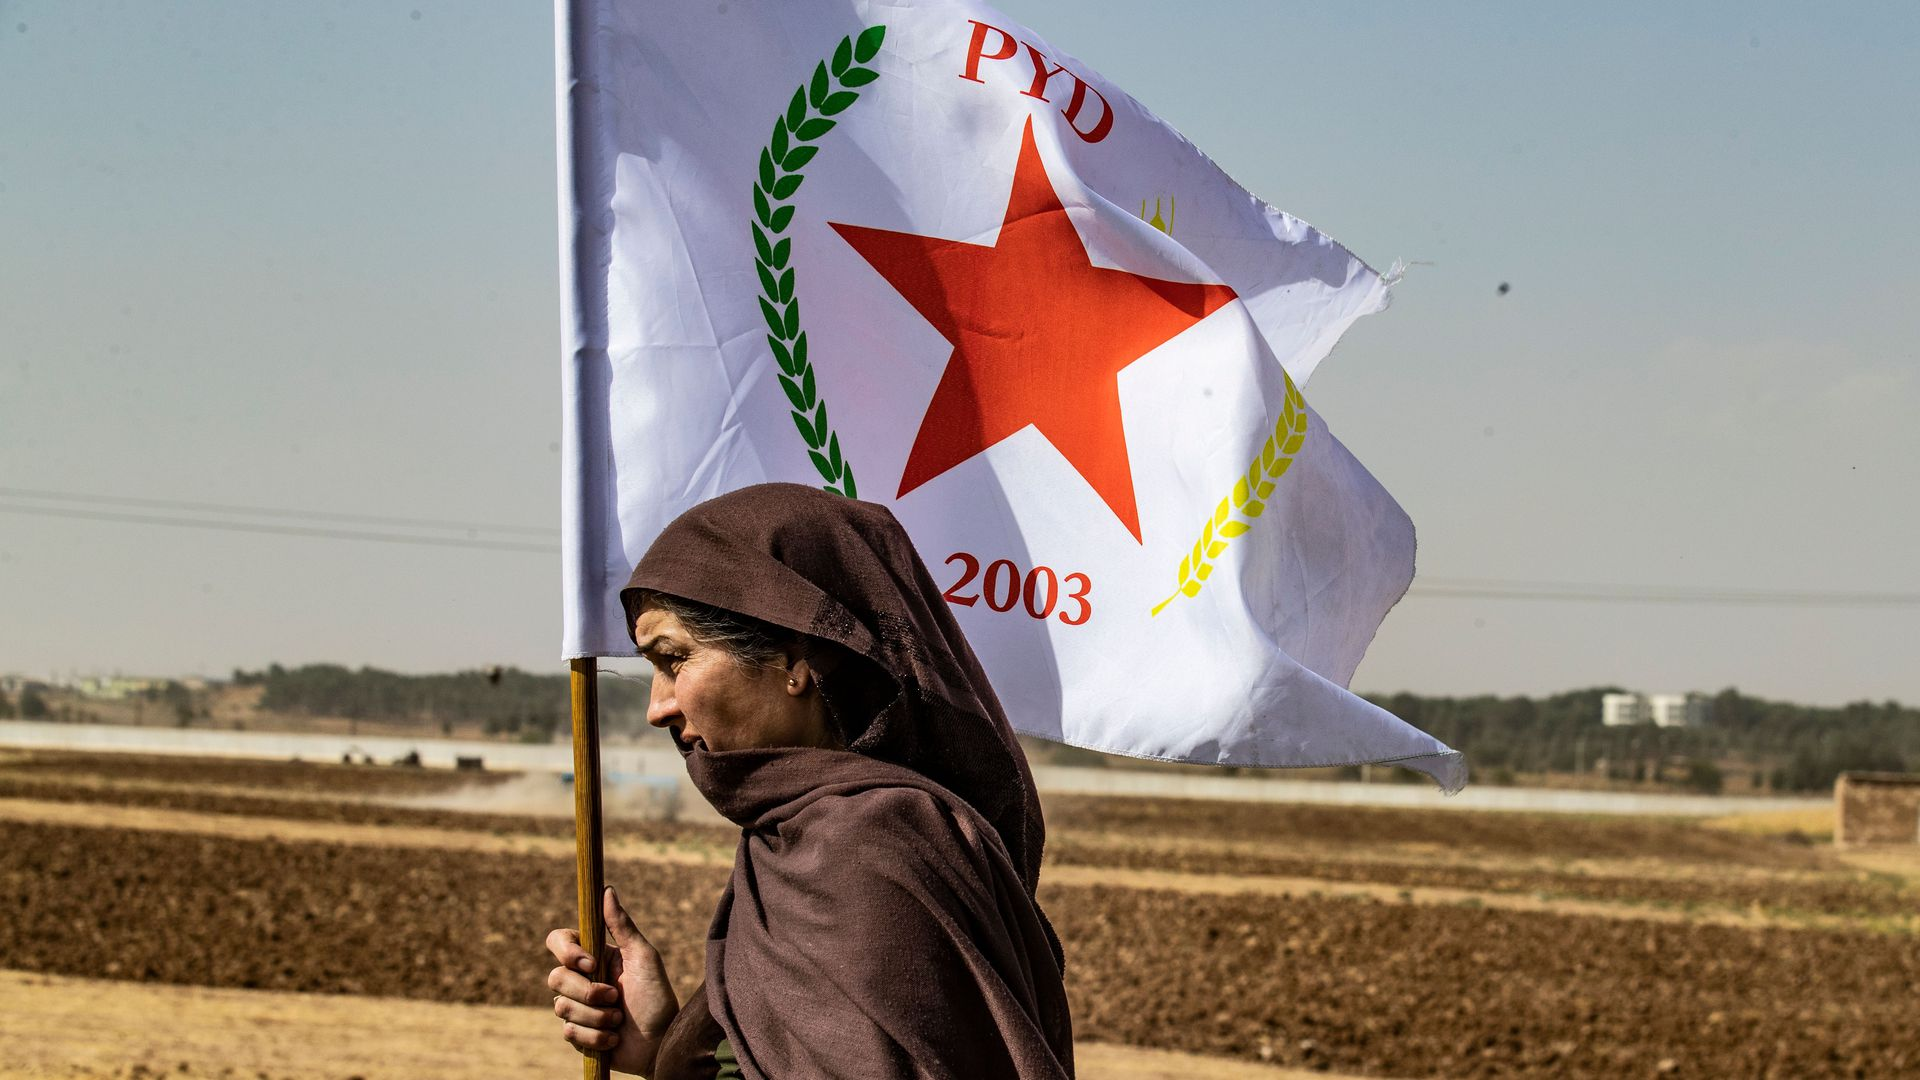 A Syrian Kurdish woman waves the flag of the Democratic Union Party during a demonstration against Turkish threats in Syria near the Turkish border.